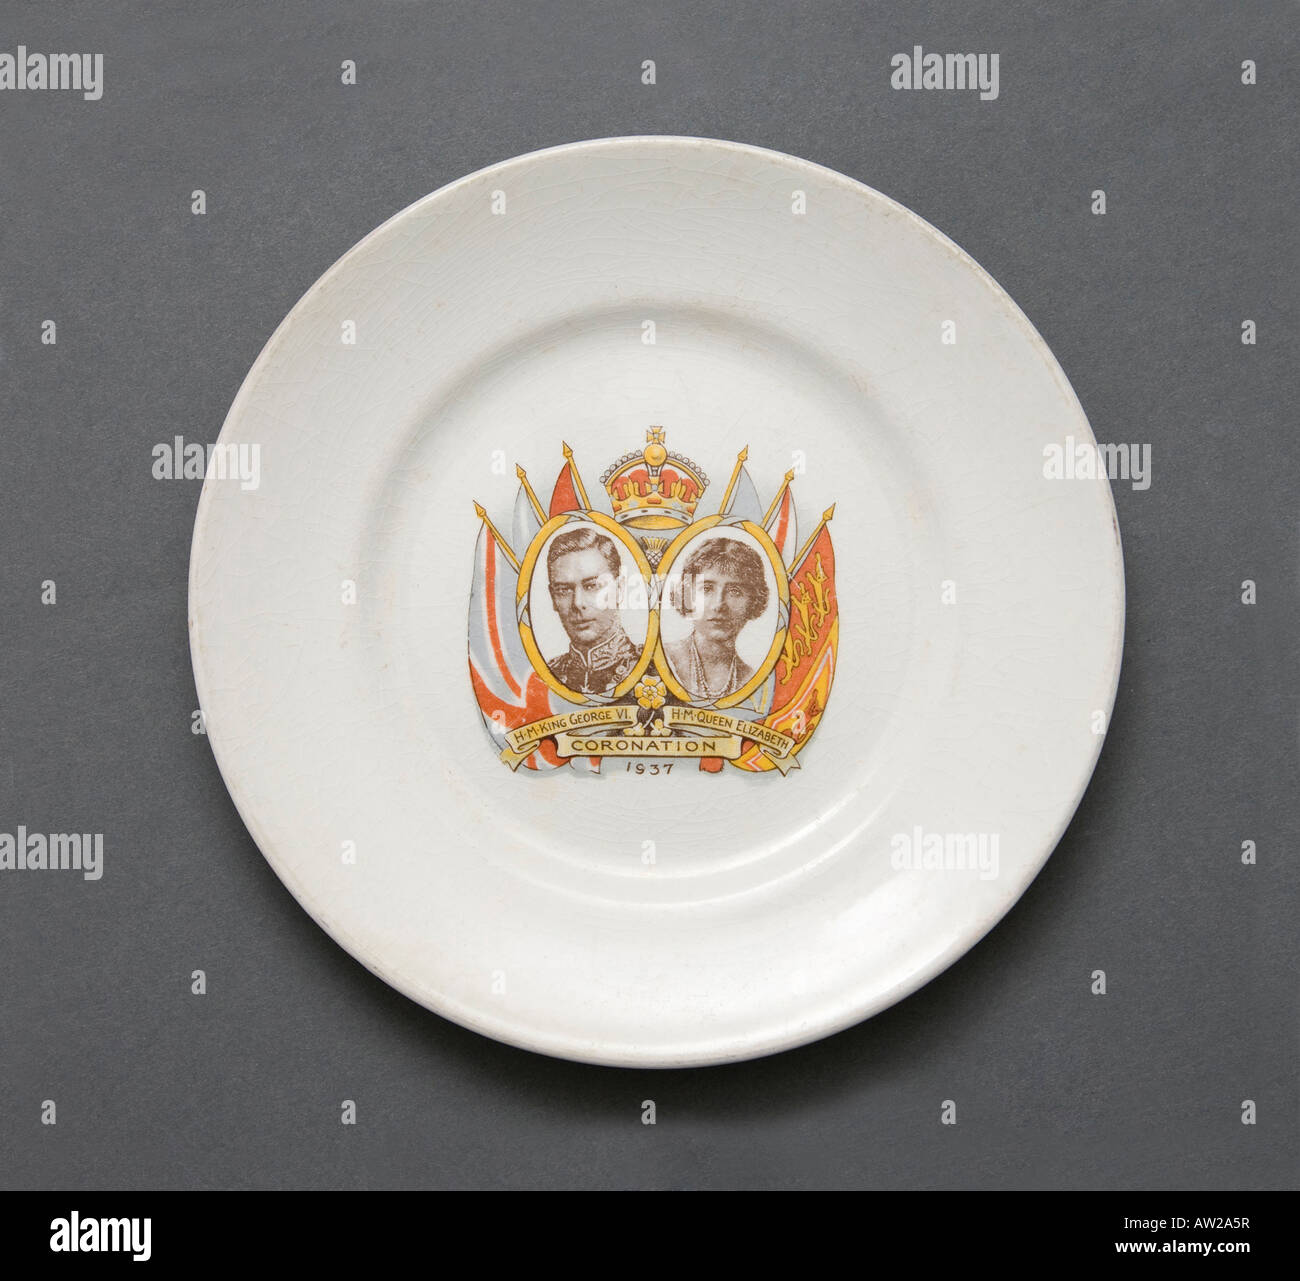 plate commemorating the royal coronation of King George VI and Queen Elizabeth in 1937 Stock Photo